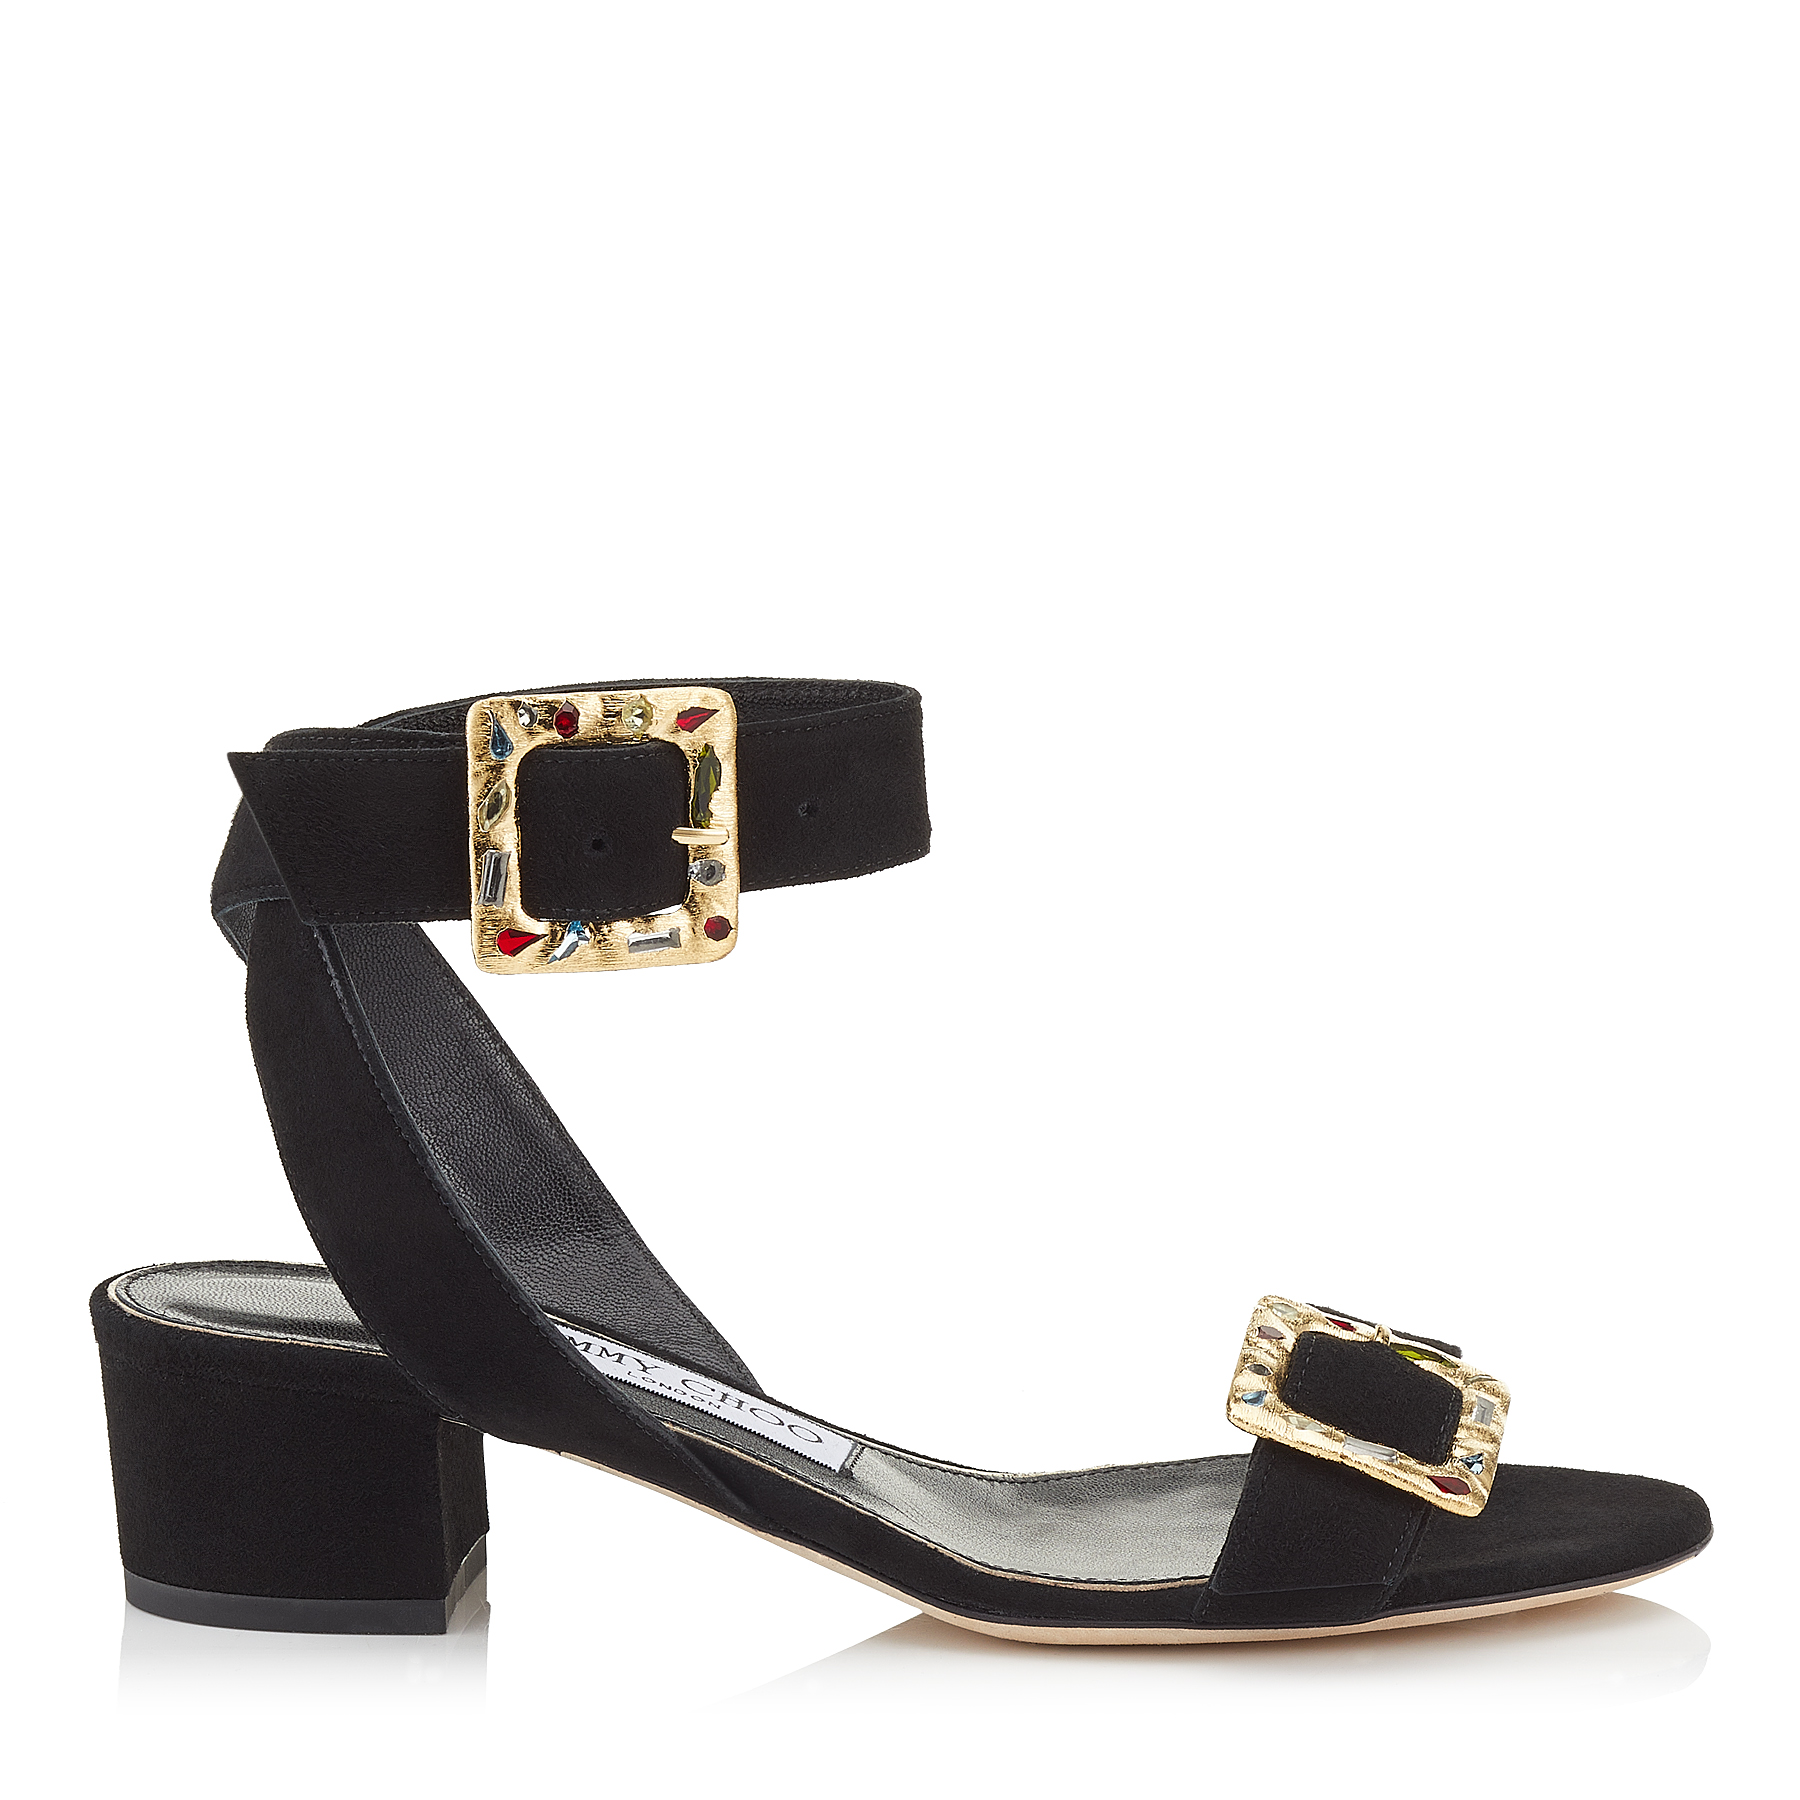 DACHA 35 Black Suede Sandals with Jewelled Buckle by Jimmy Choo